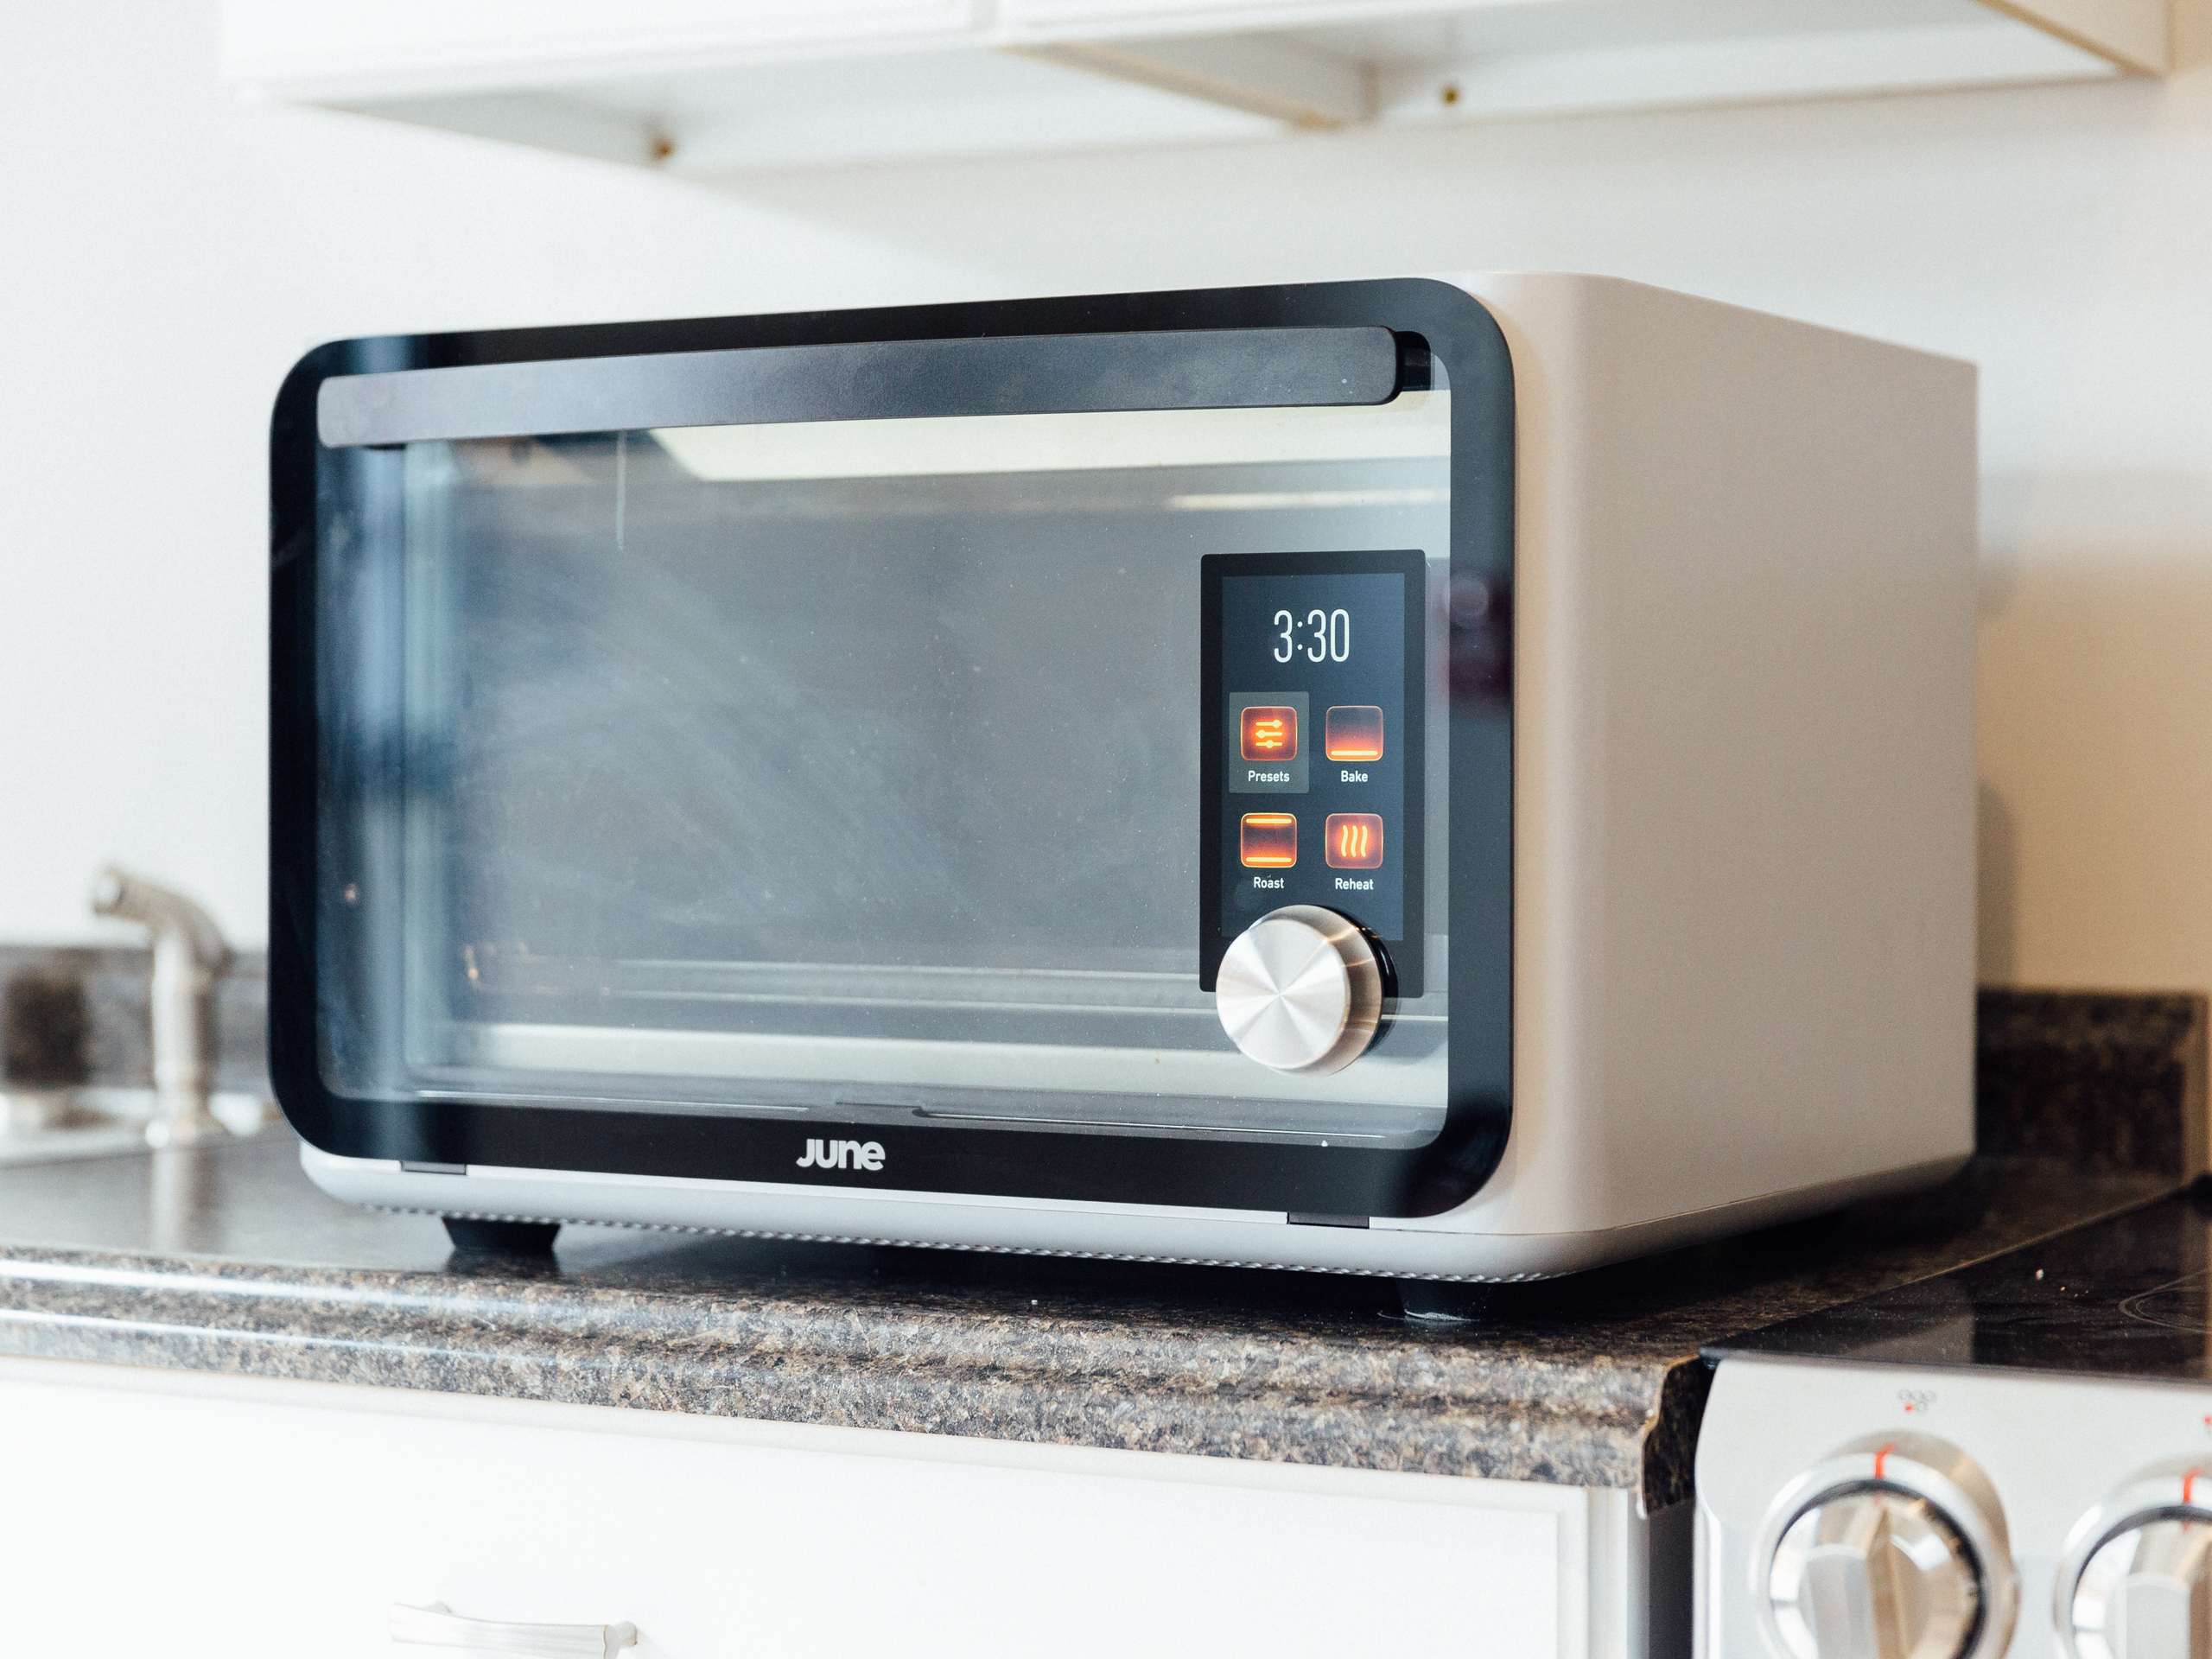 june-oven-product-photos-2.jpg